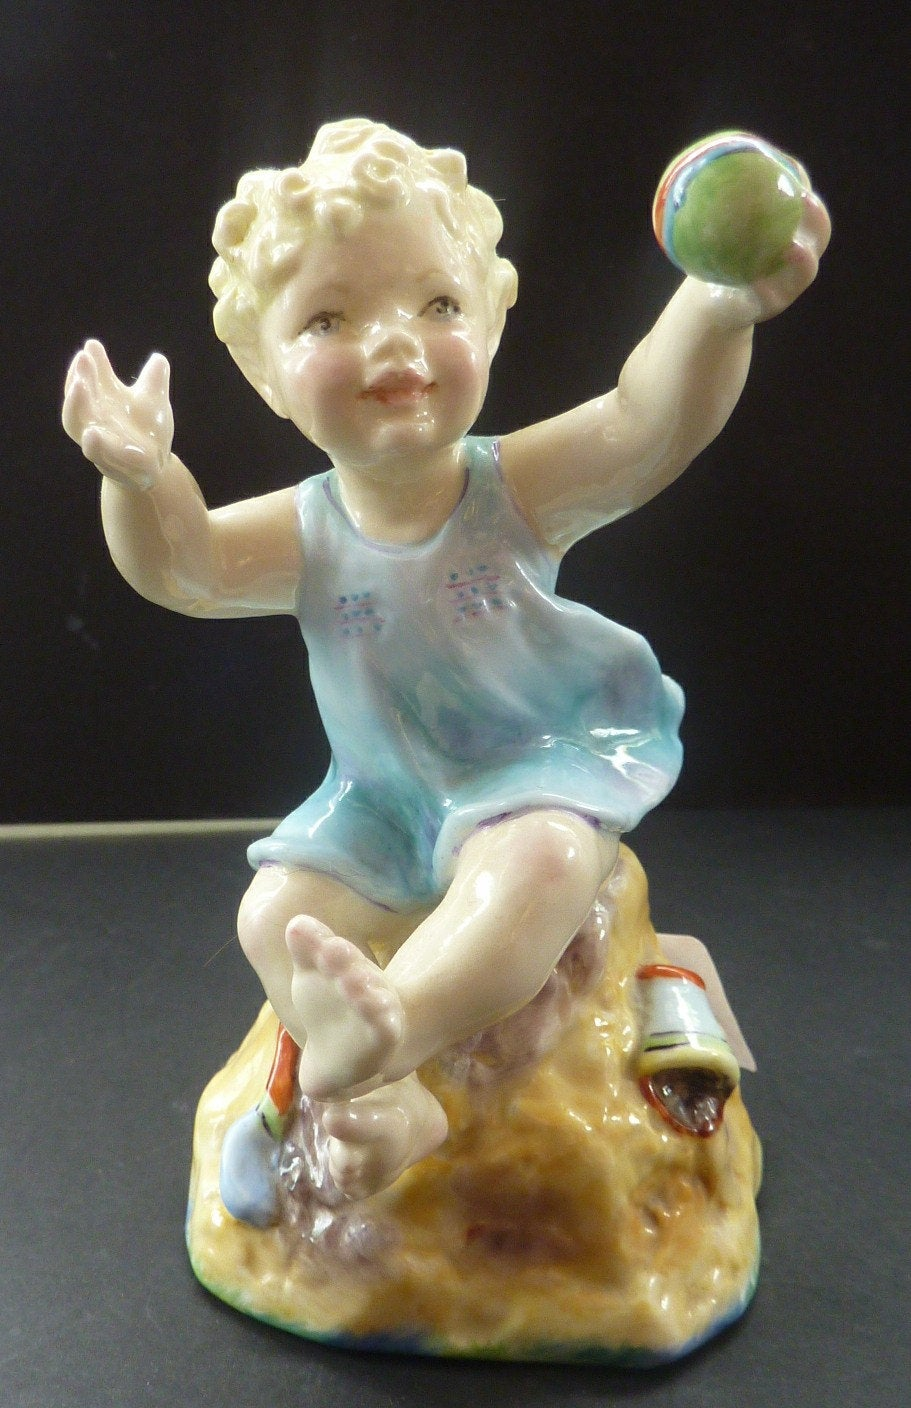 Beautifully Modelled Figurine by Freda Doughty. Sunday's Child ROYAL WORCESTER. Model No. 3256